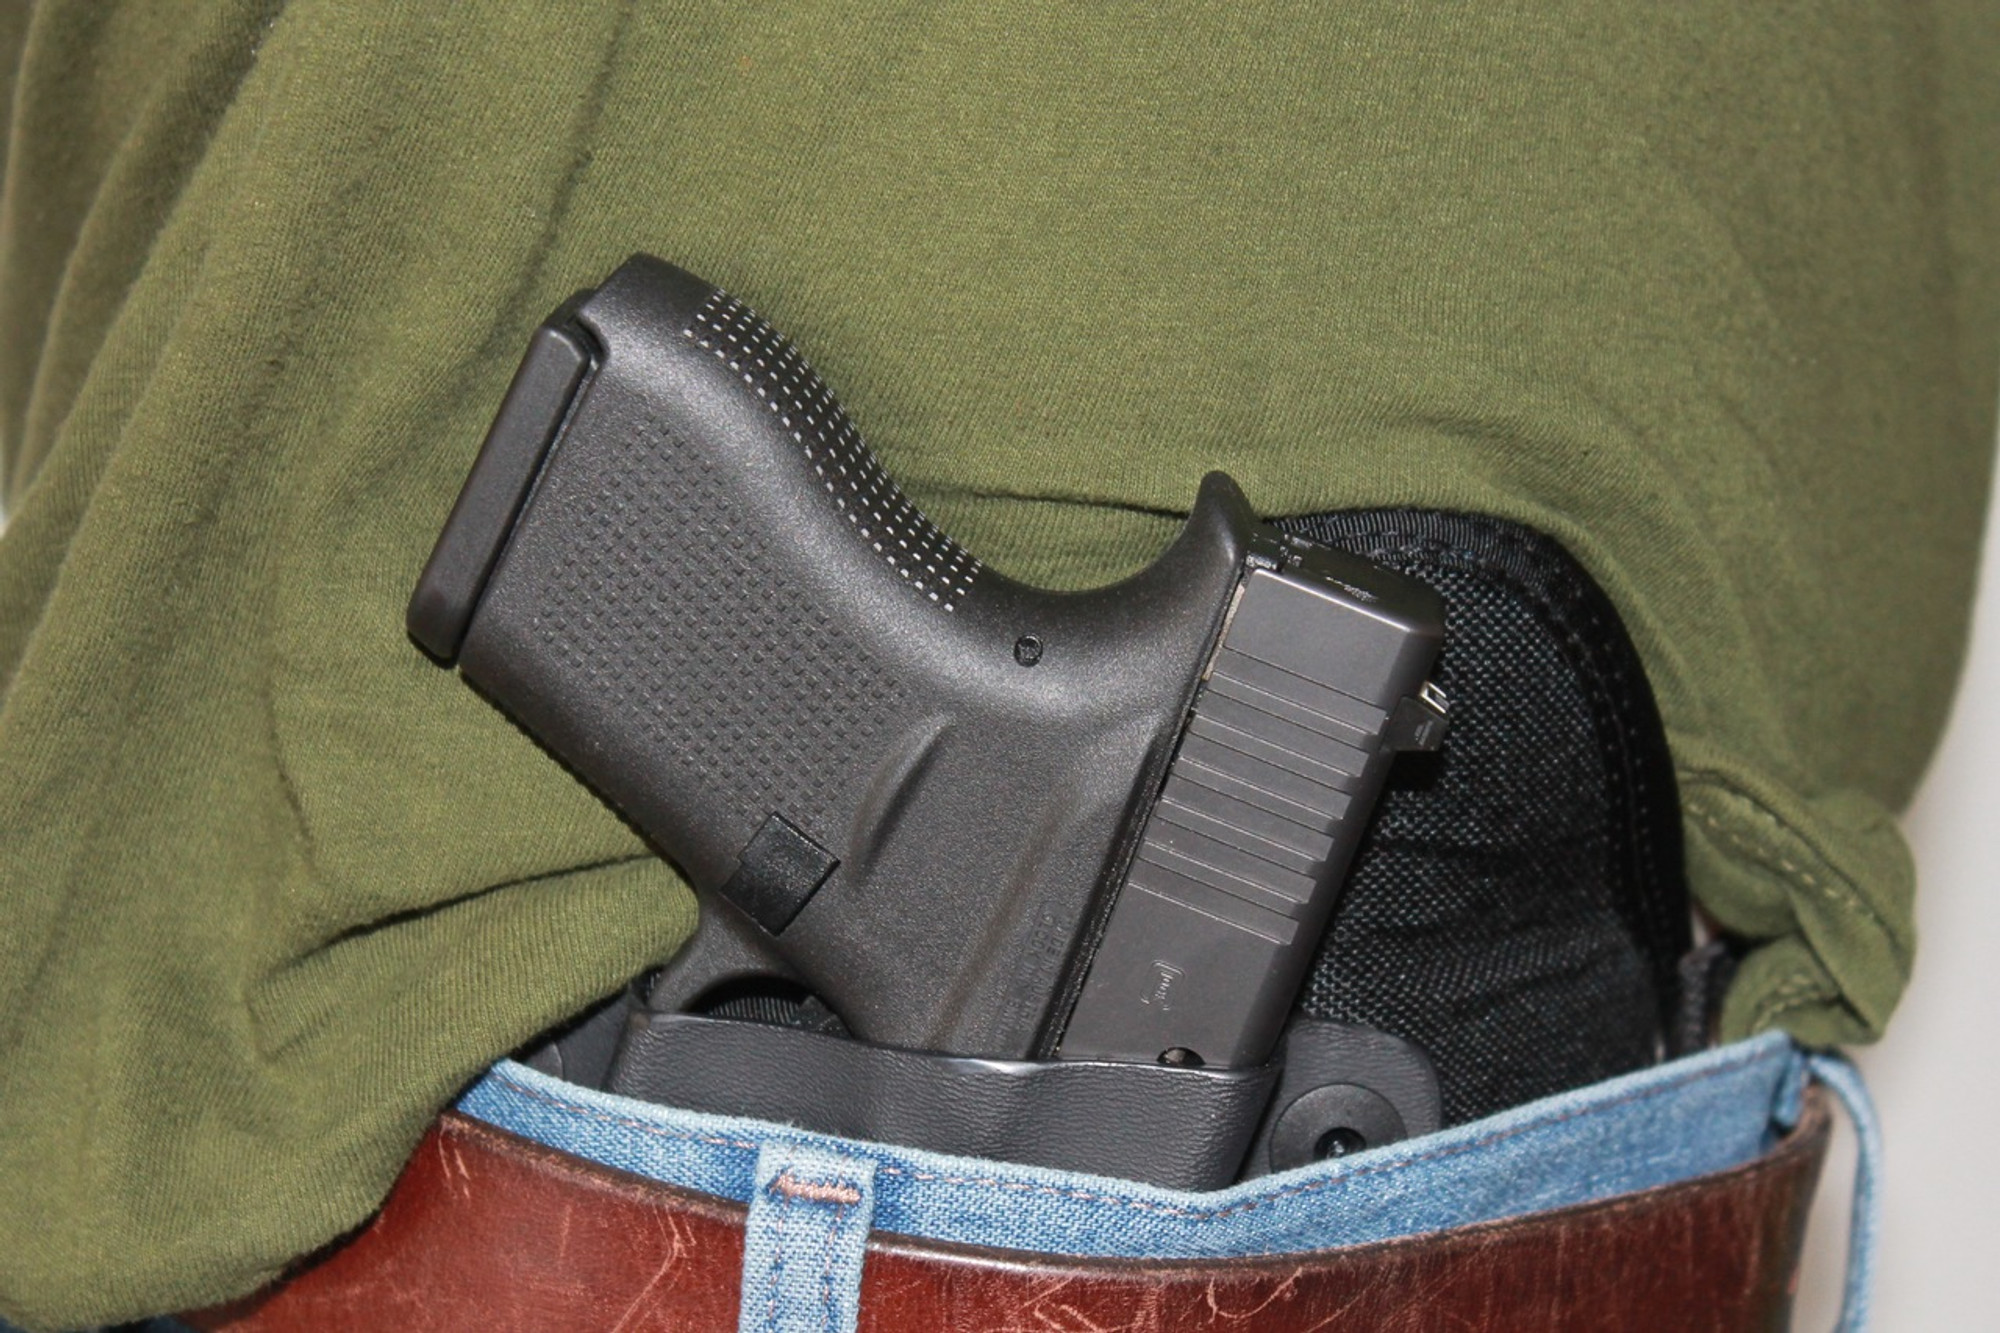 Laser Equipped TRR IWB Combat Cut Concealed Carry Holster